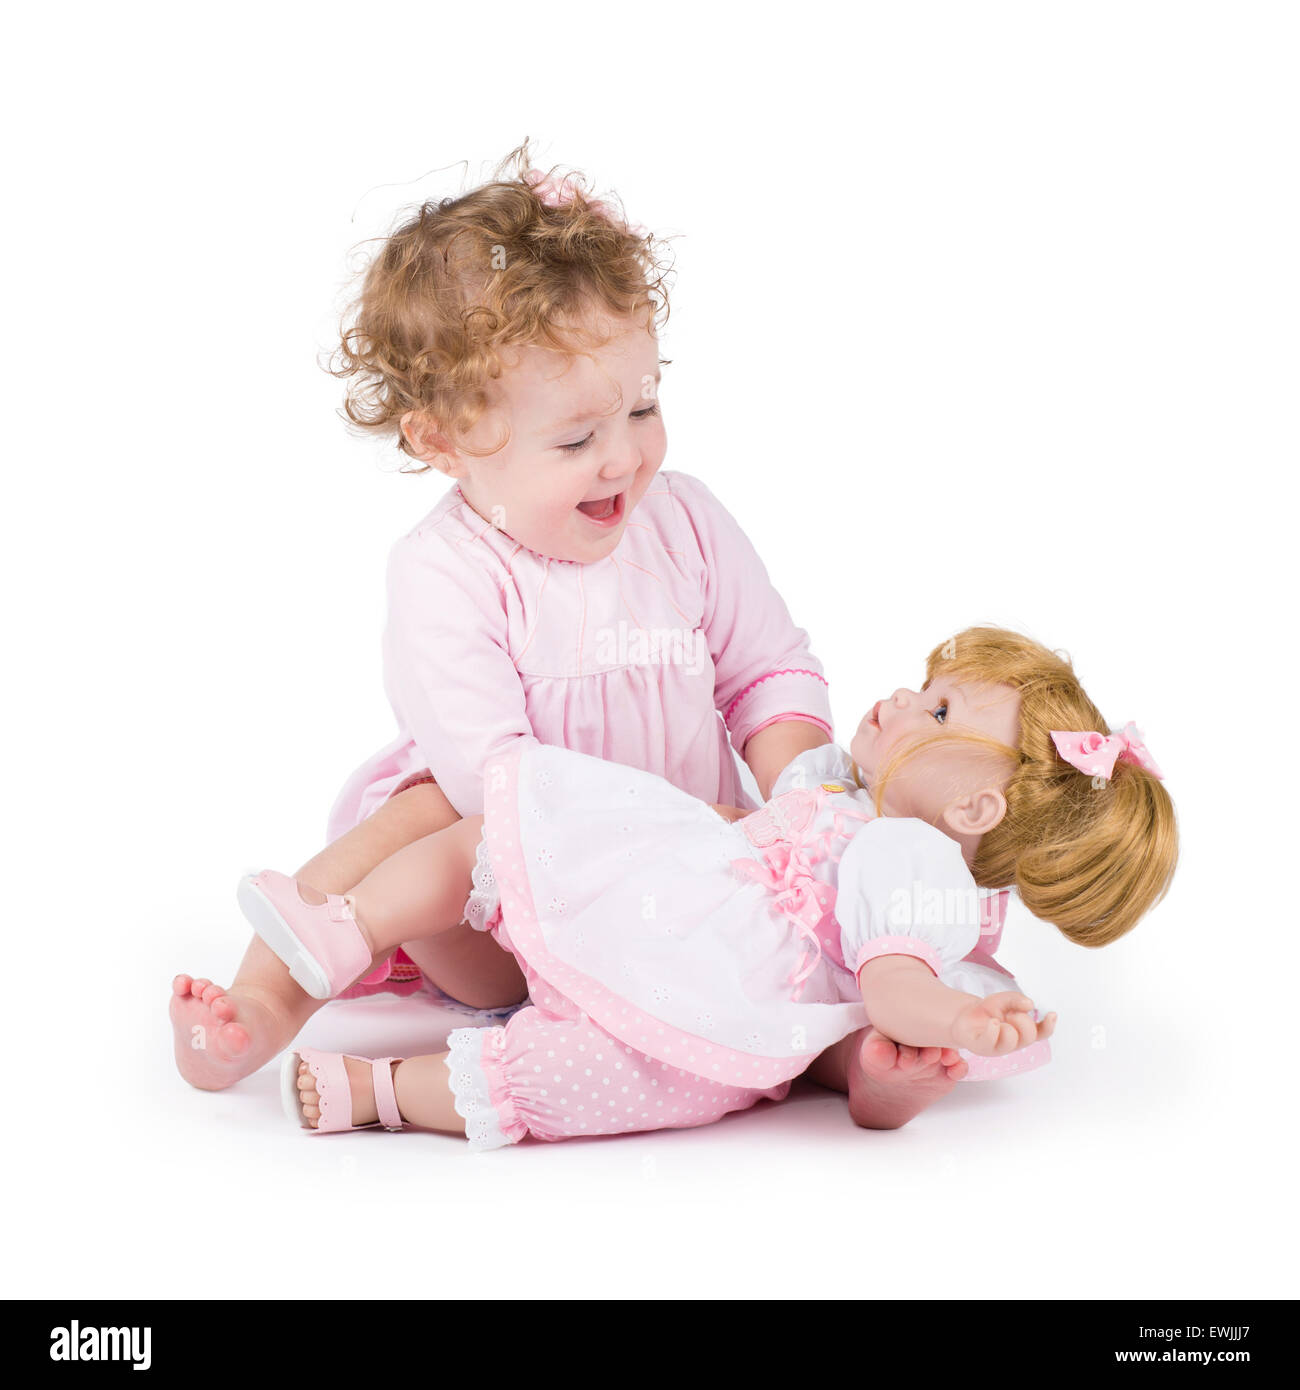 Funny little girl playing with a beautiful doll - Stock Image